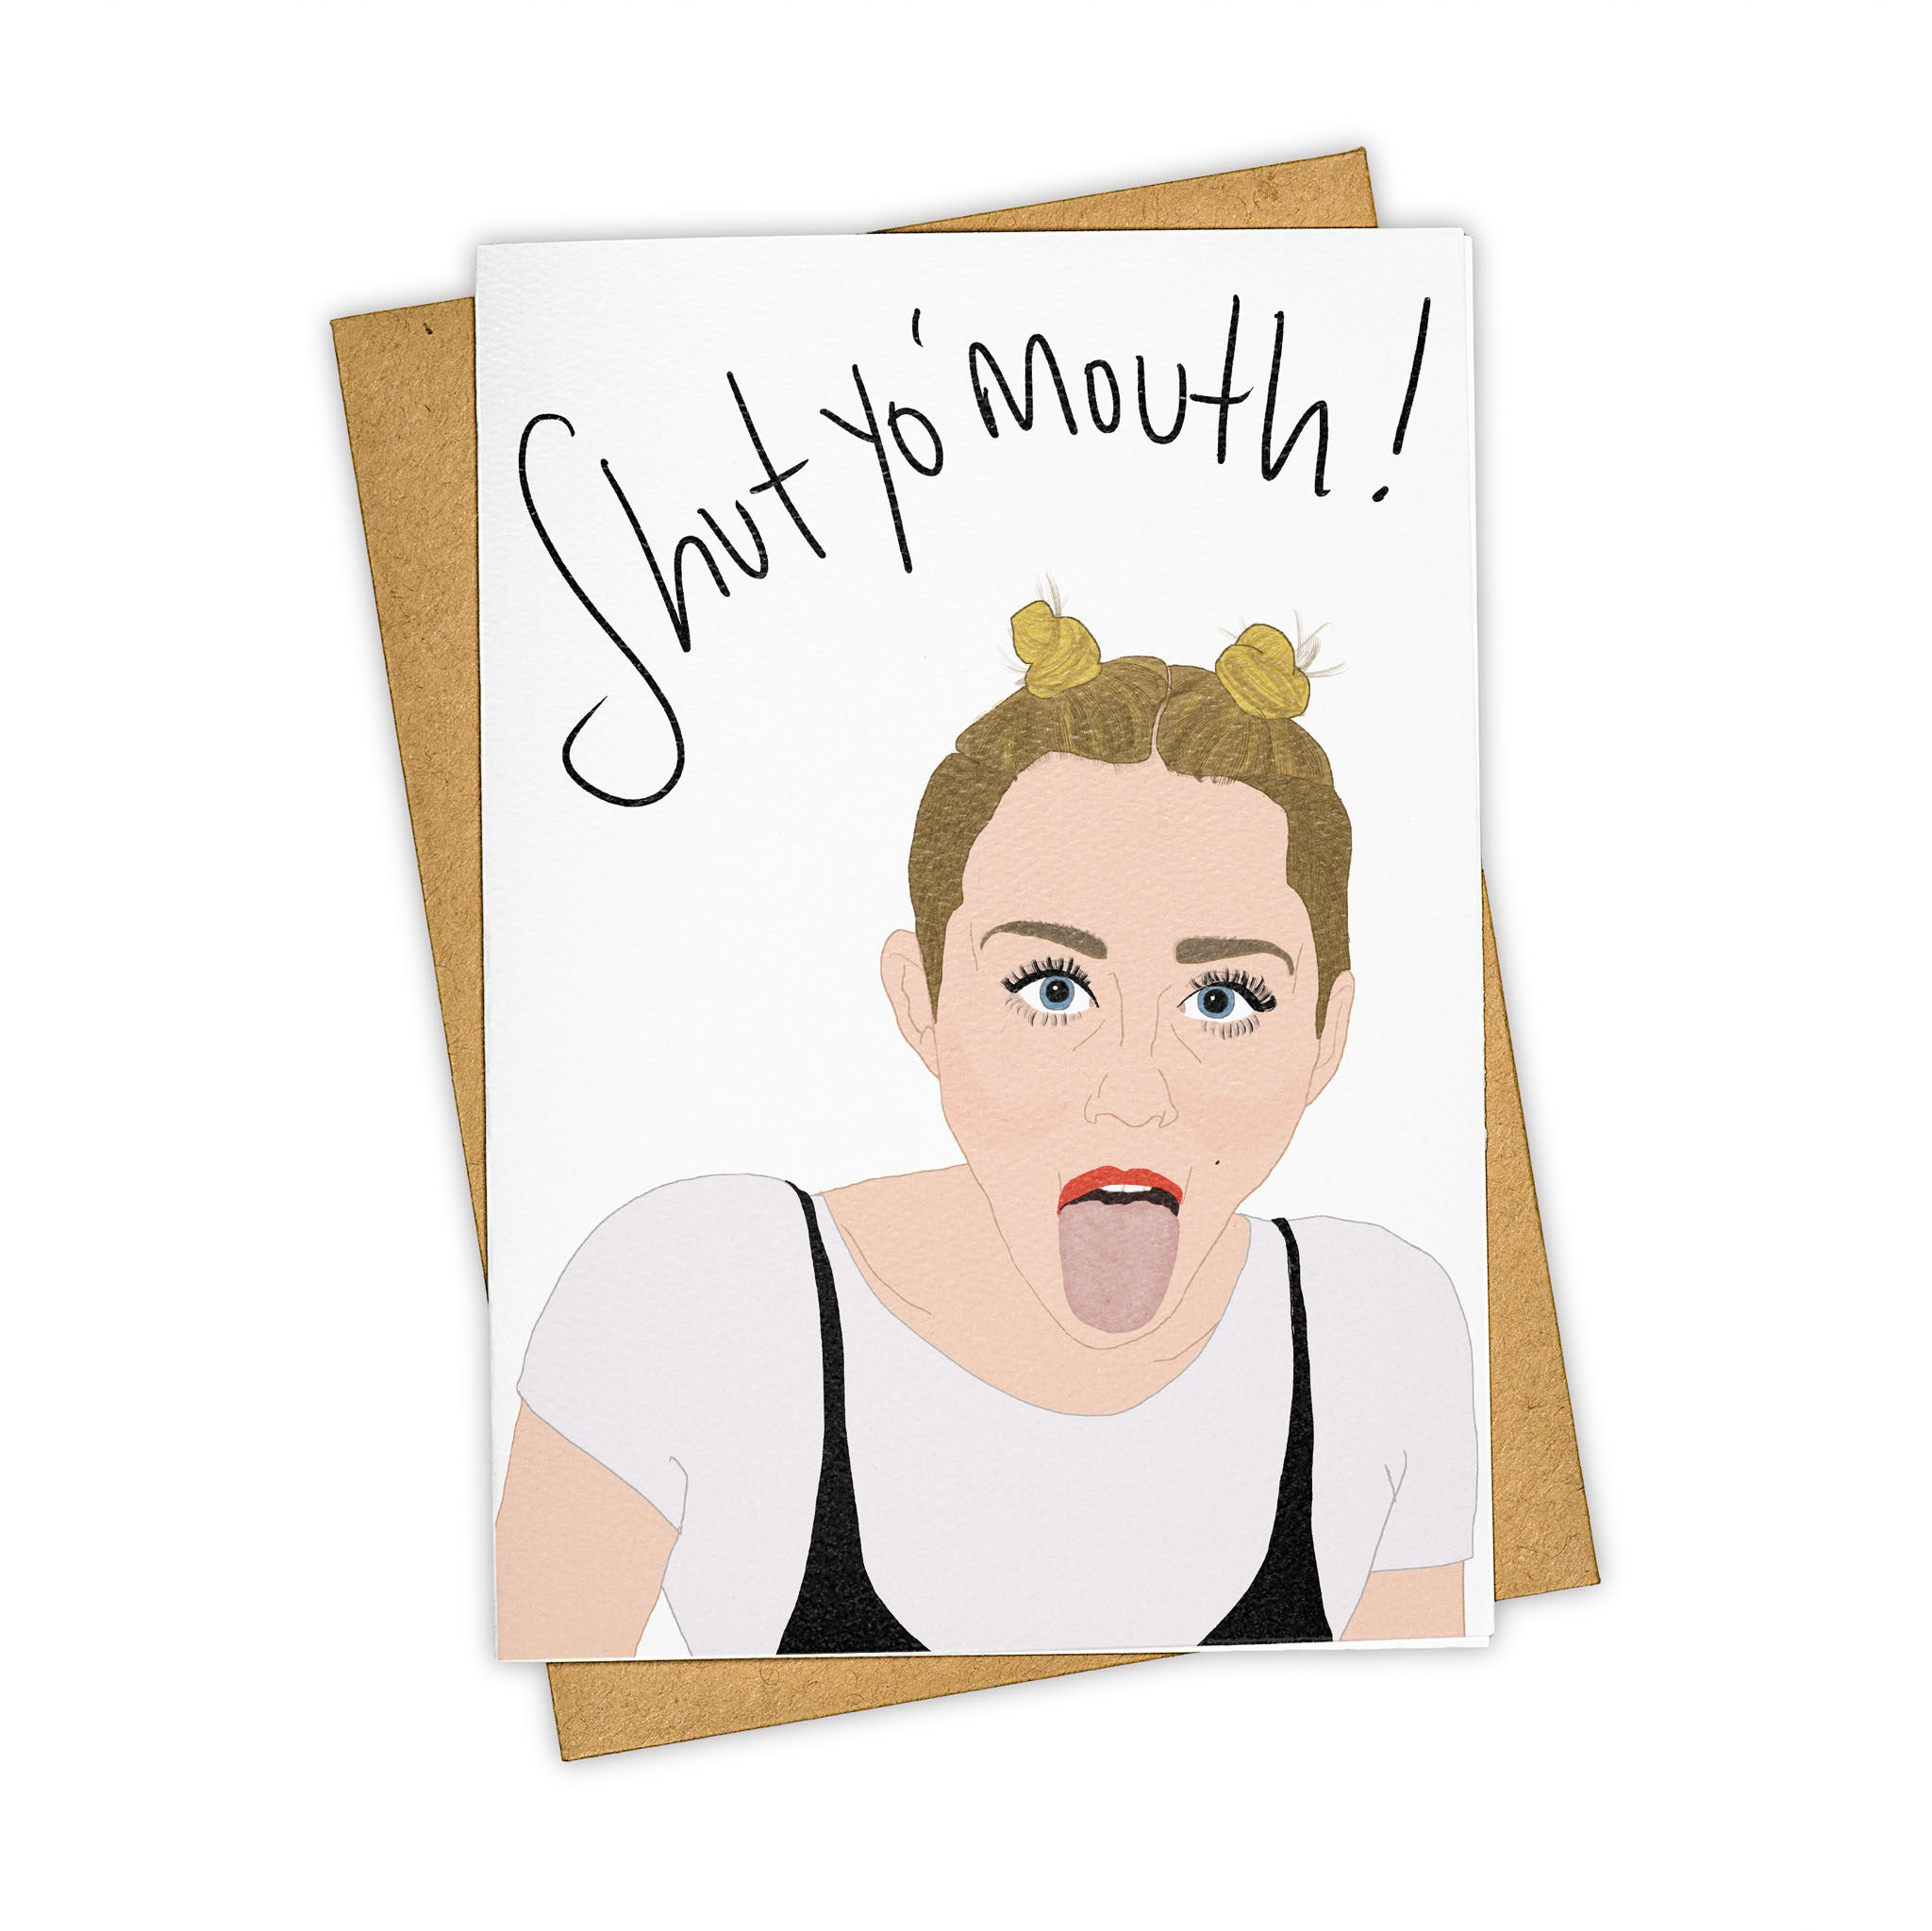 TAY HAM Miley Cyrus Tongue Greeting Card